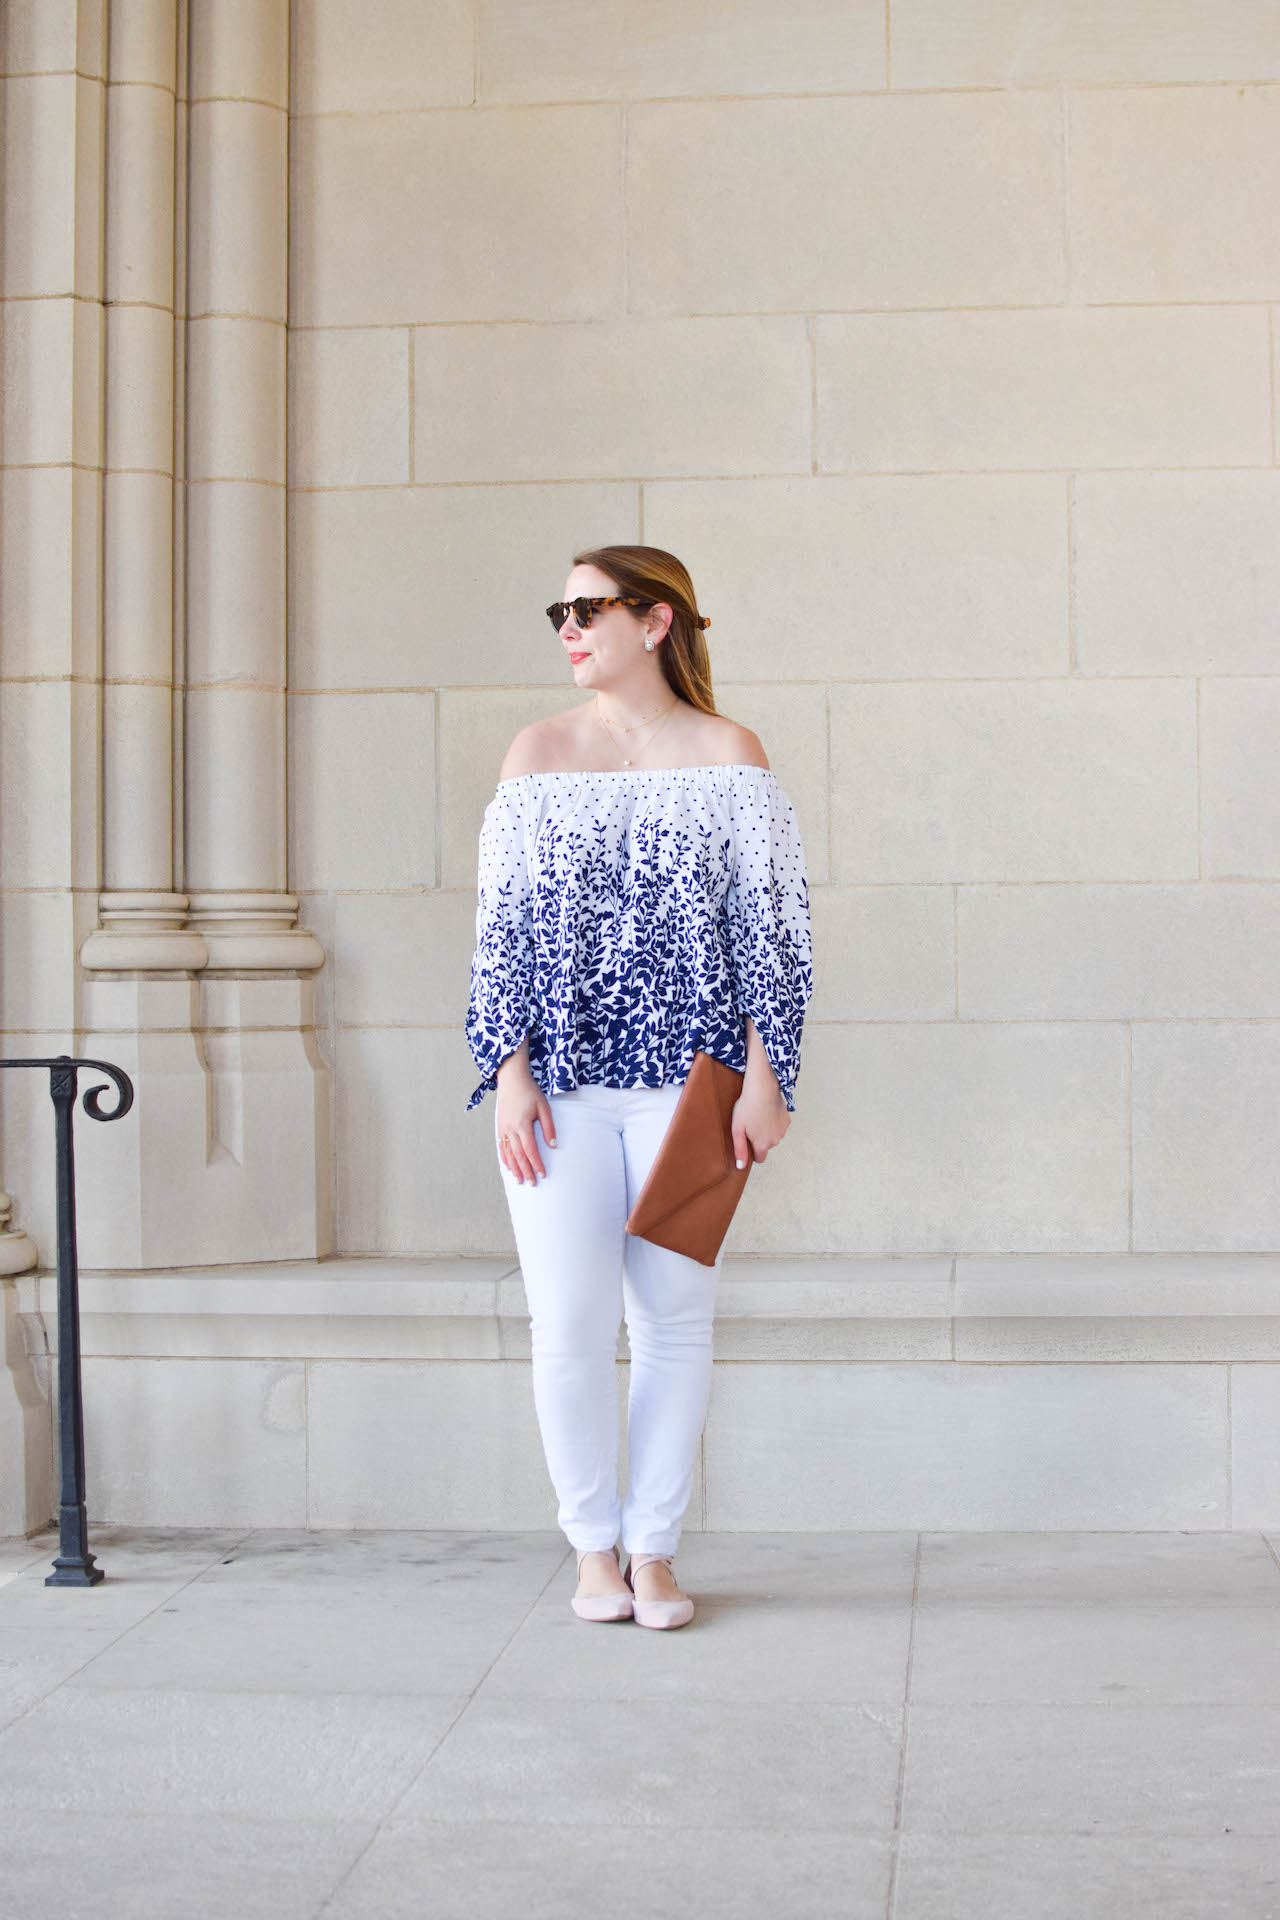 off the shoulder top outfit idea for spring